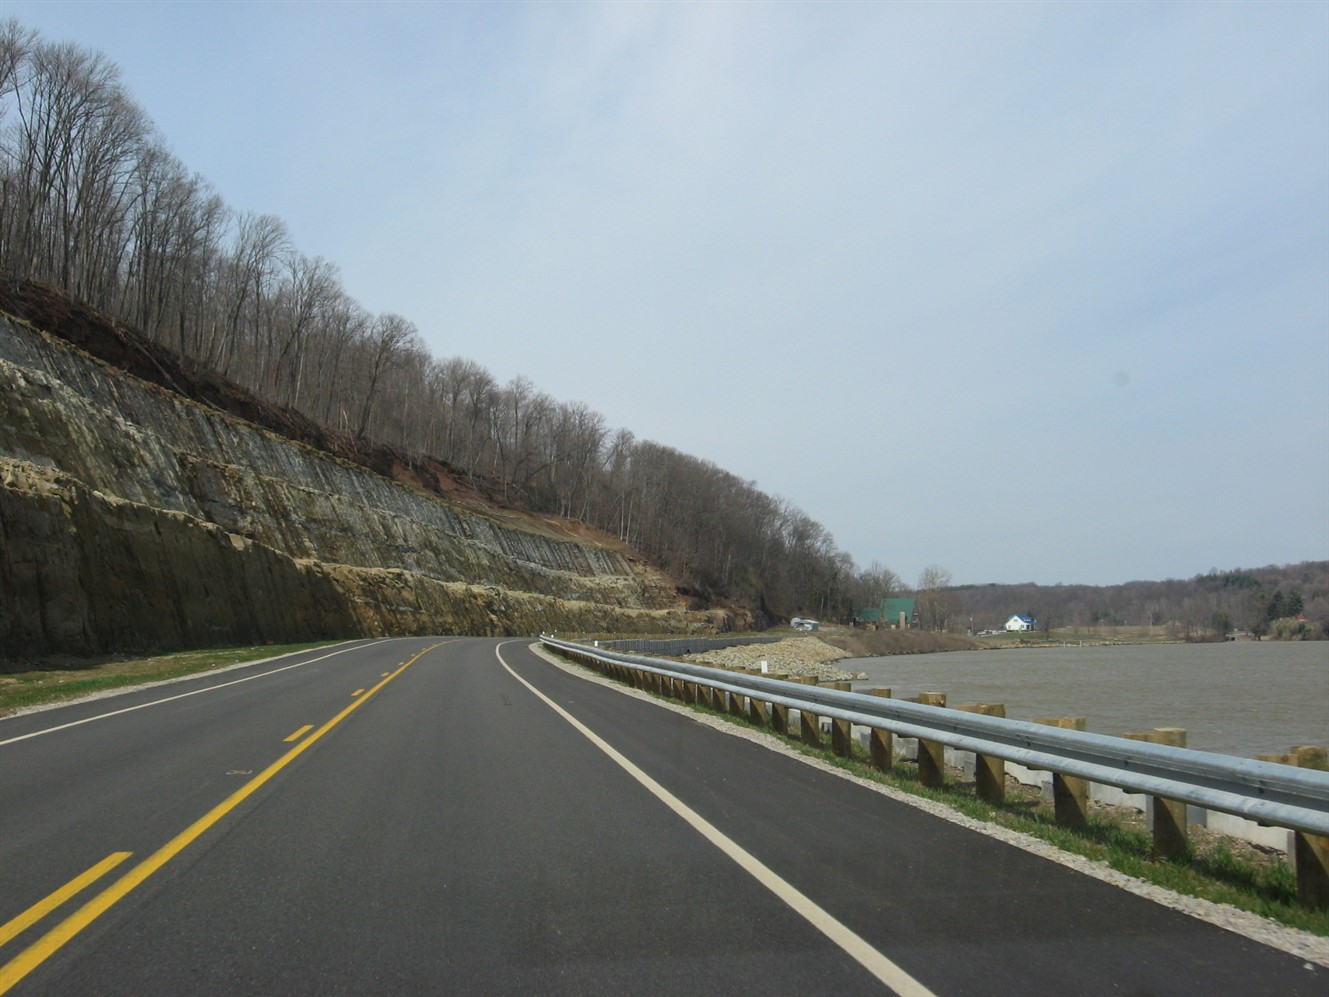 2008 03 25 18 Ohio River Hockingport.jpg